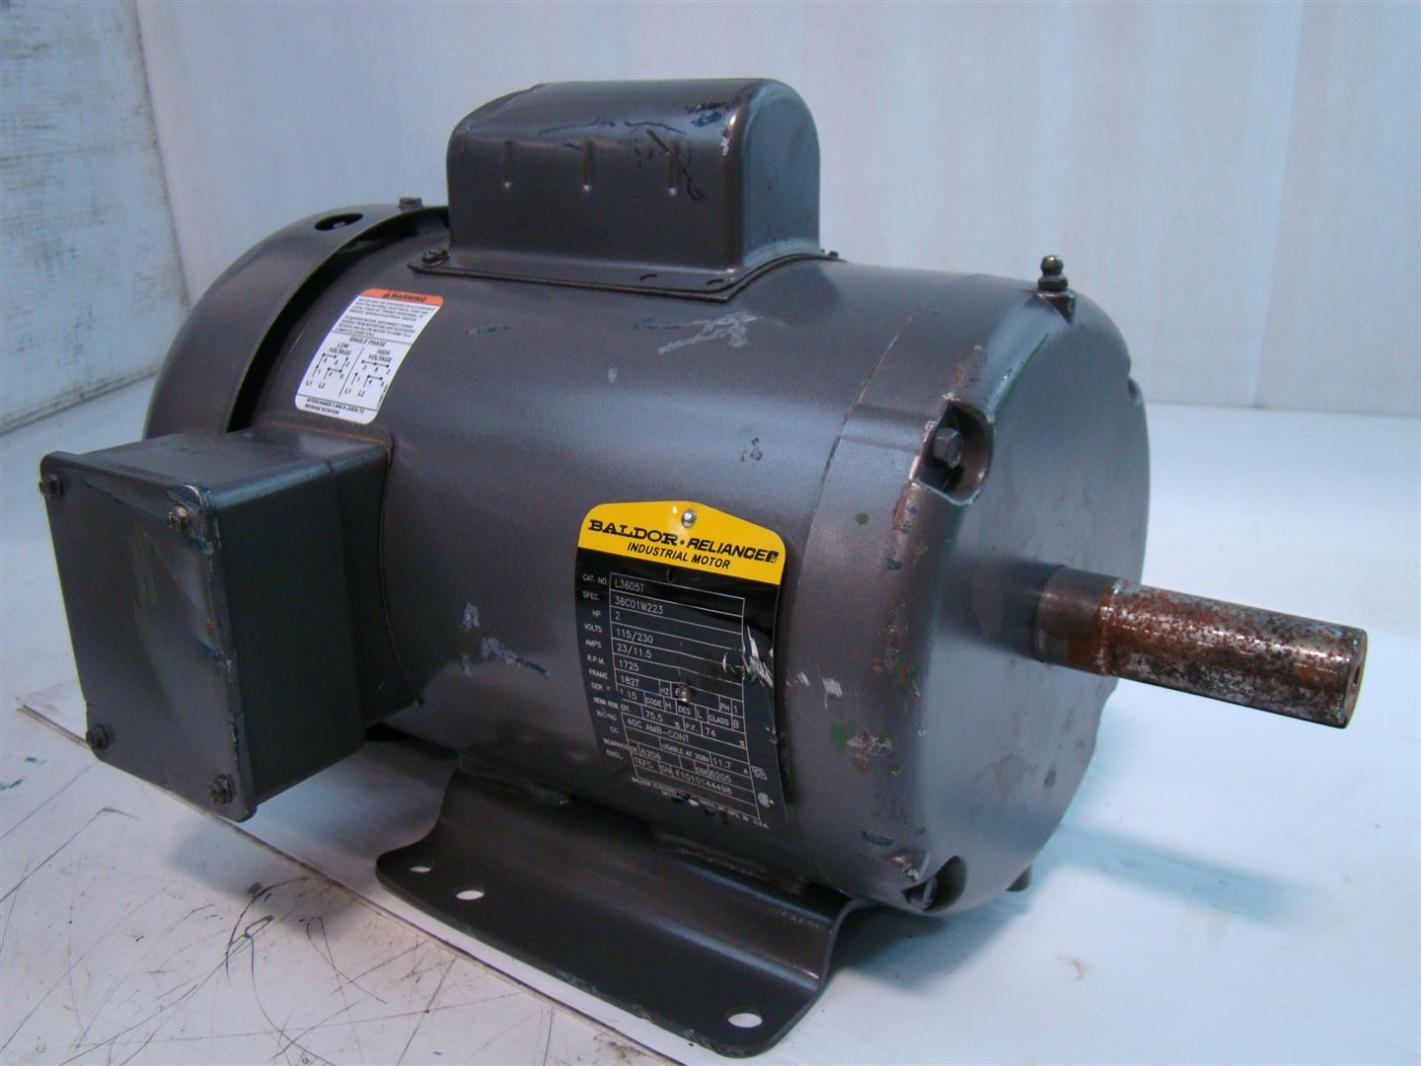 Baldor reliance industrial motor 2hp 115 230v 23 11 5amps for Baldor industrial motor parts